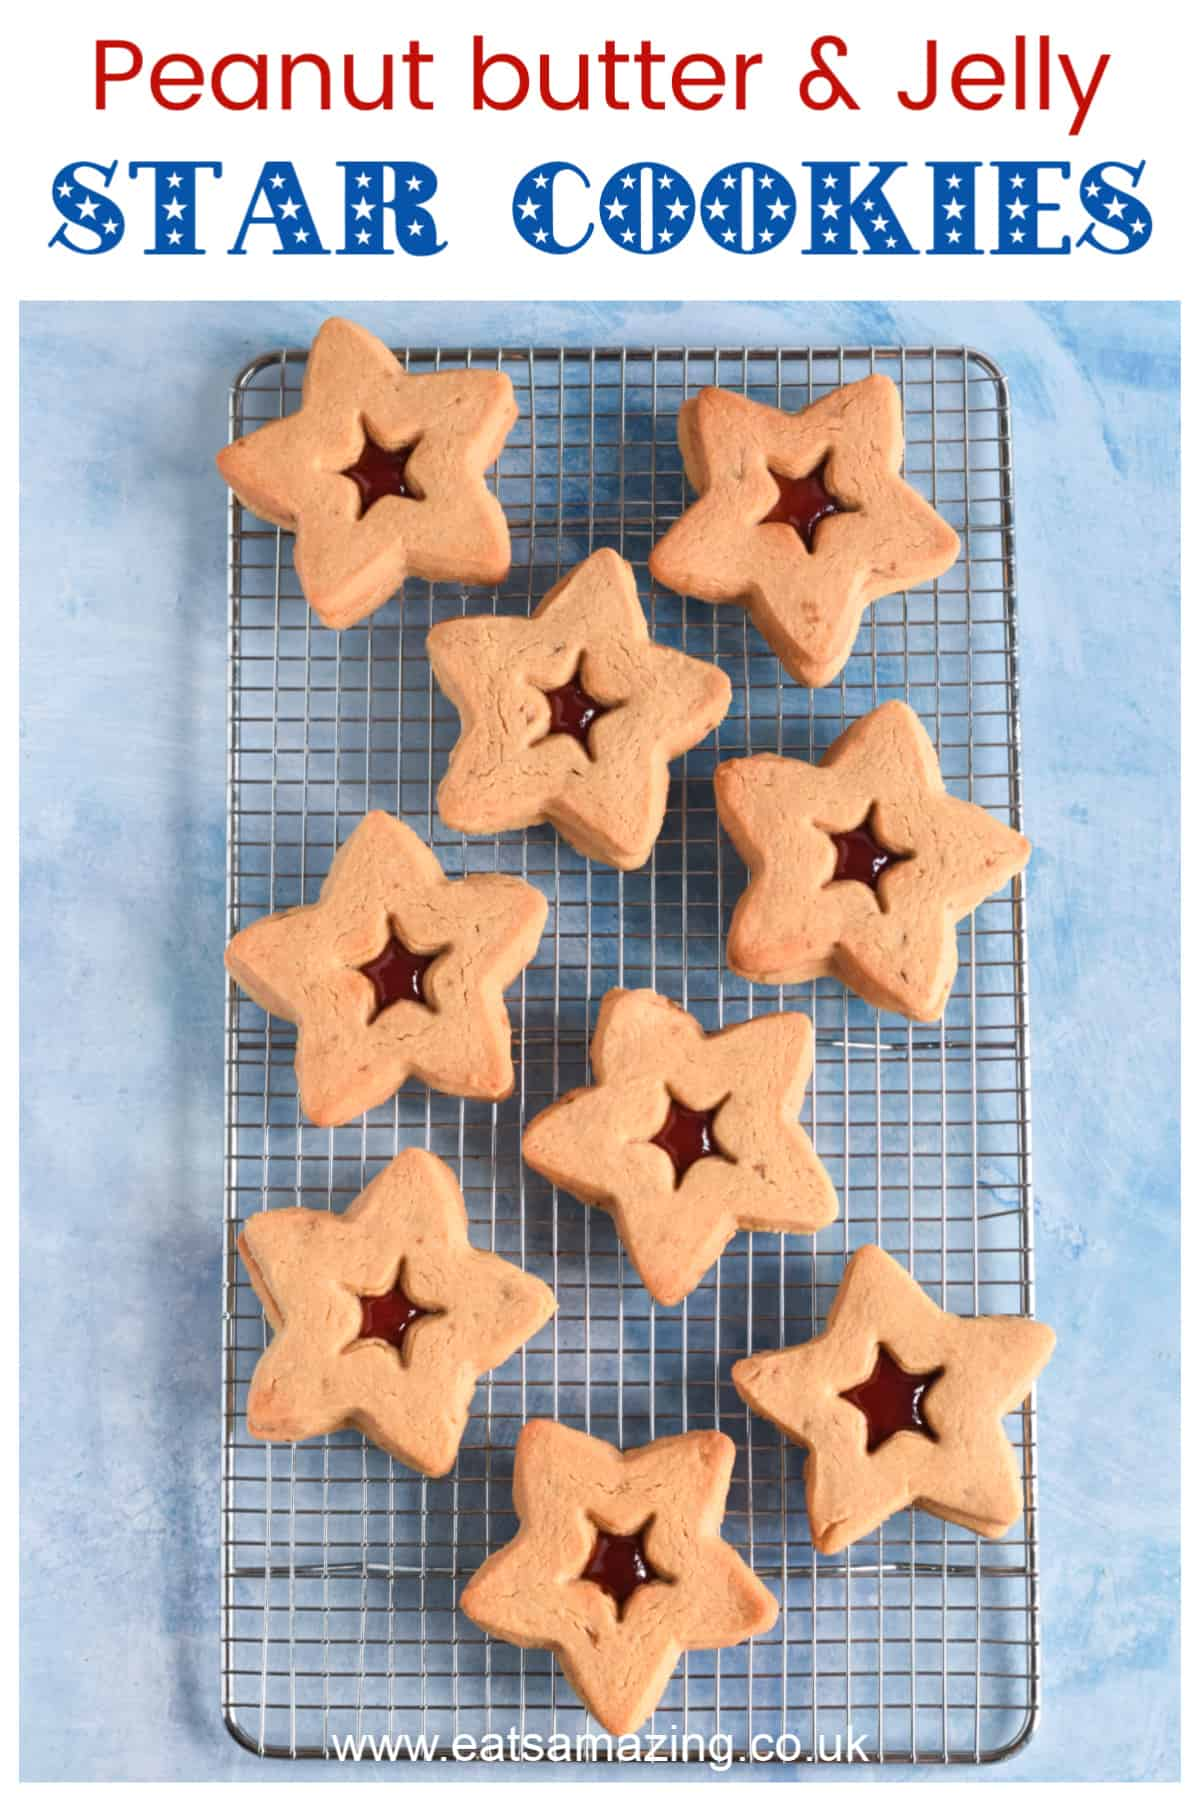 Fun star shaped peanut butter jelly cookies recipe - perfect make with kids for the 4th July